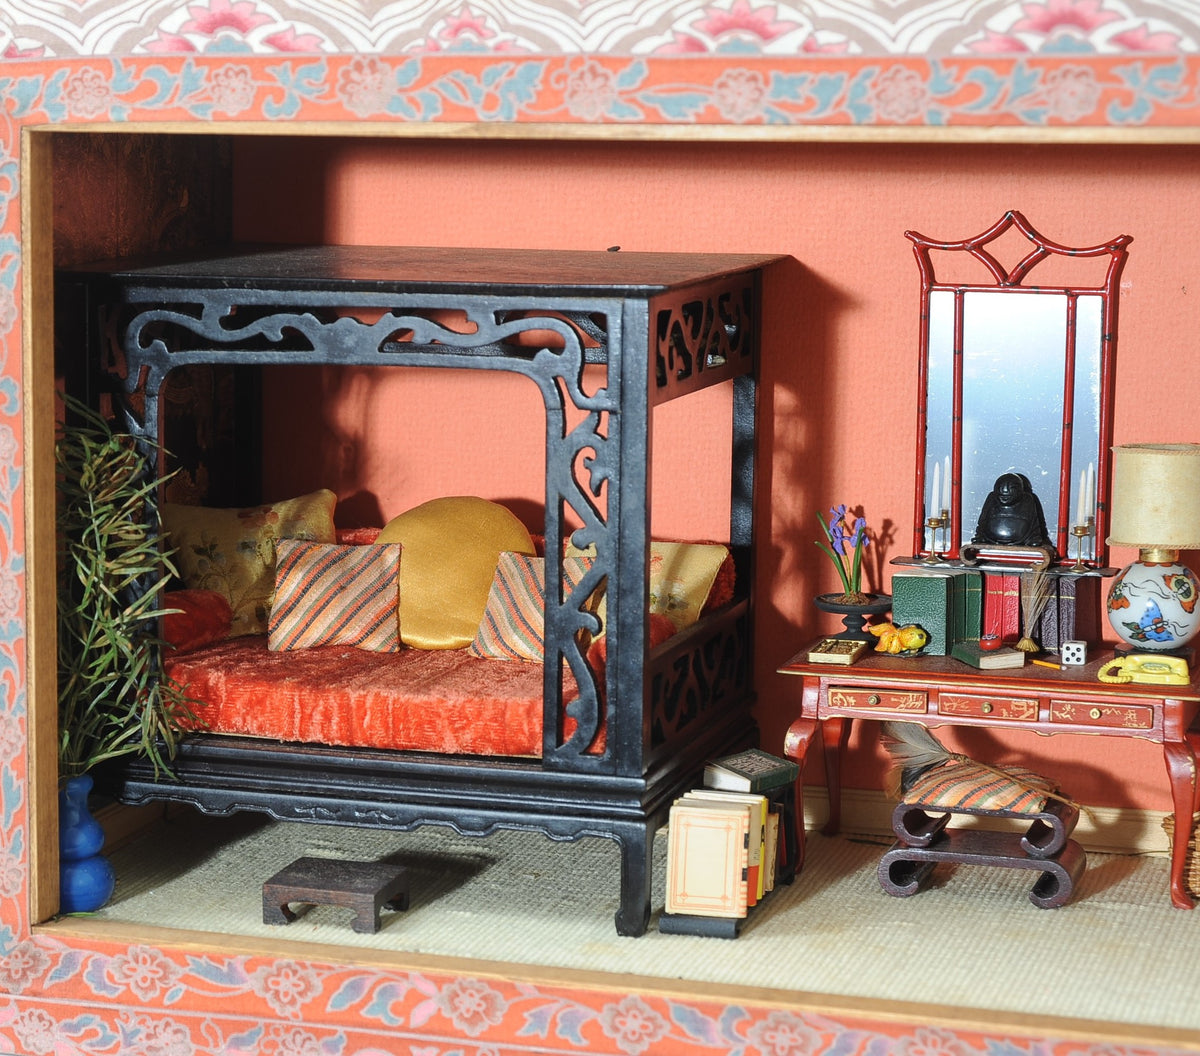 Room Model or Shadow Box with Miniature Furnishings in the Oriental Style